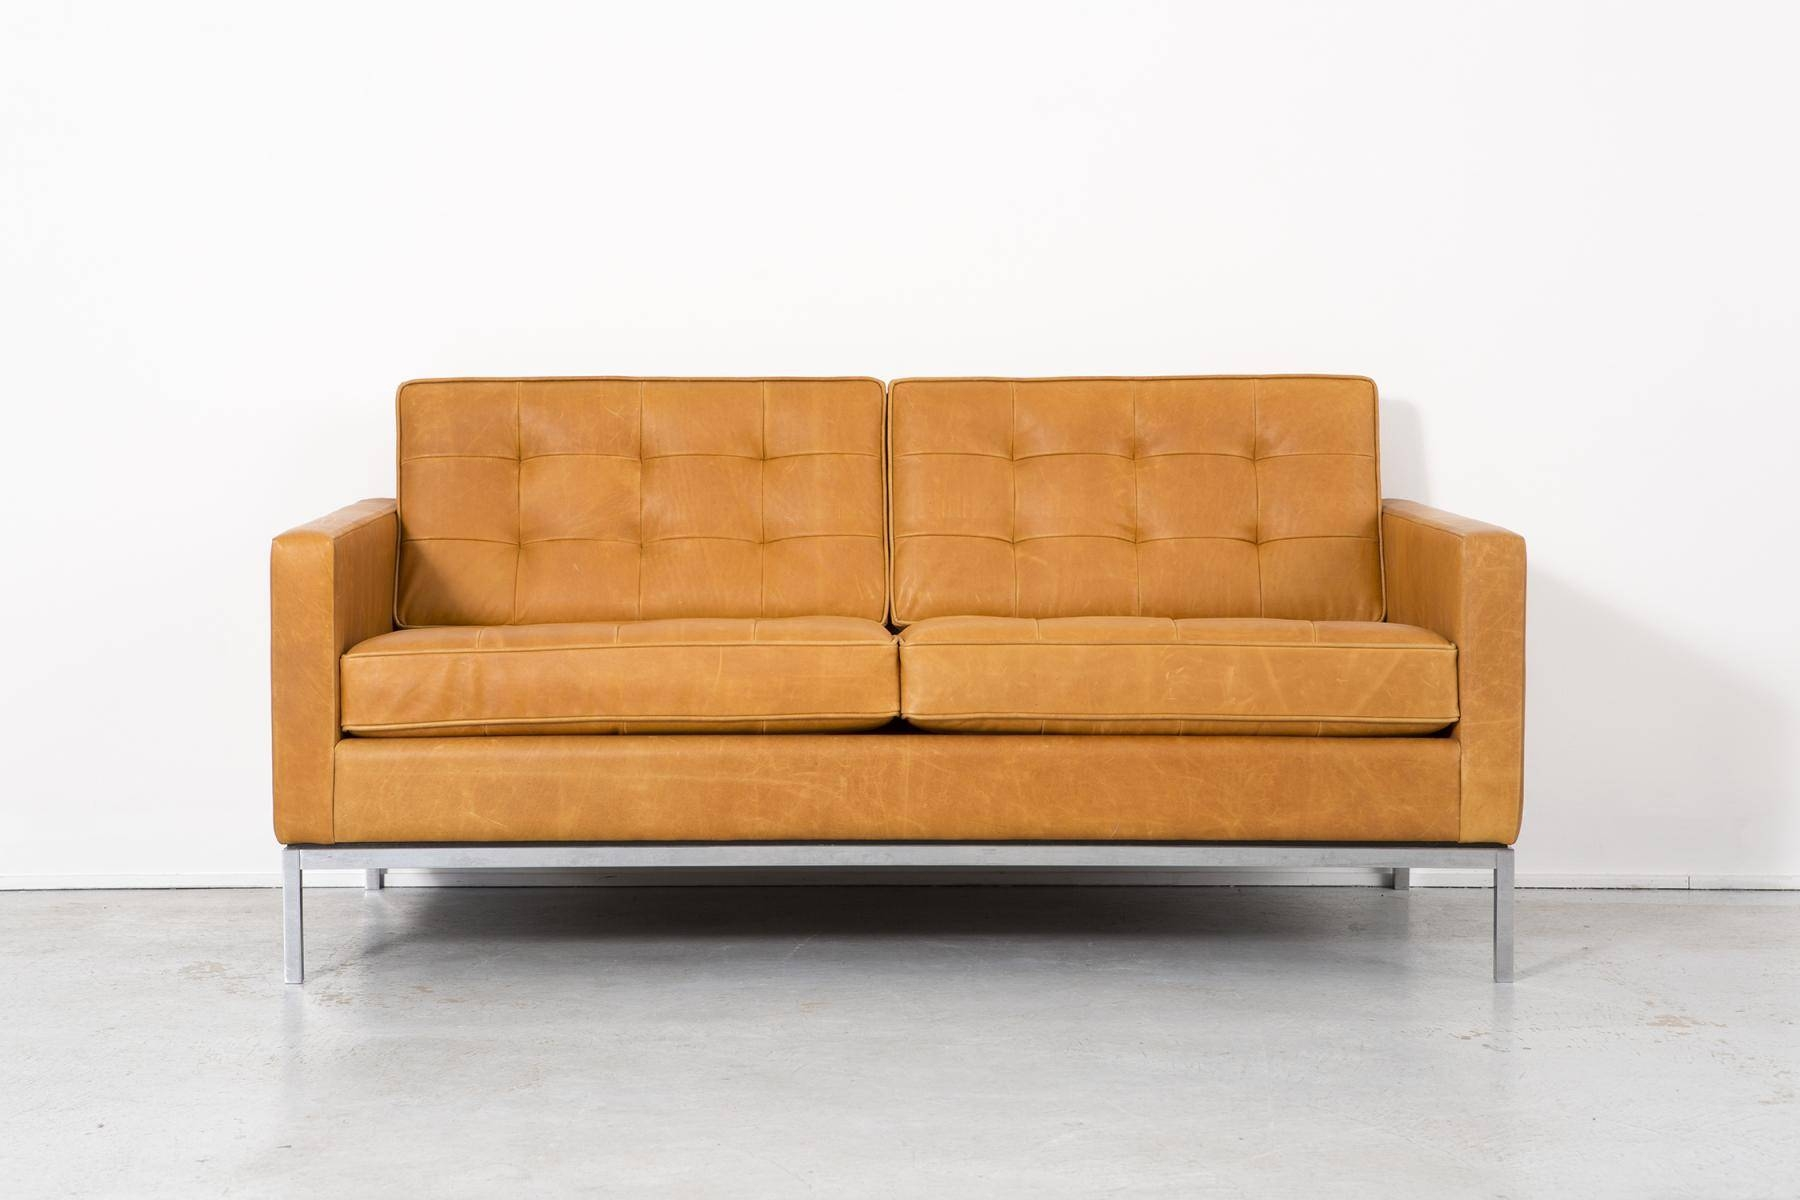 Leather Sofaflorence Knoll Bassett For Knoll, 1970S For Sale inside Florence Sofas (Image 26 of 30)